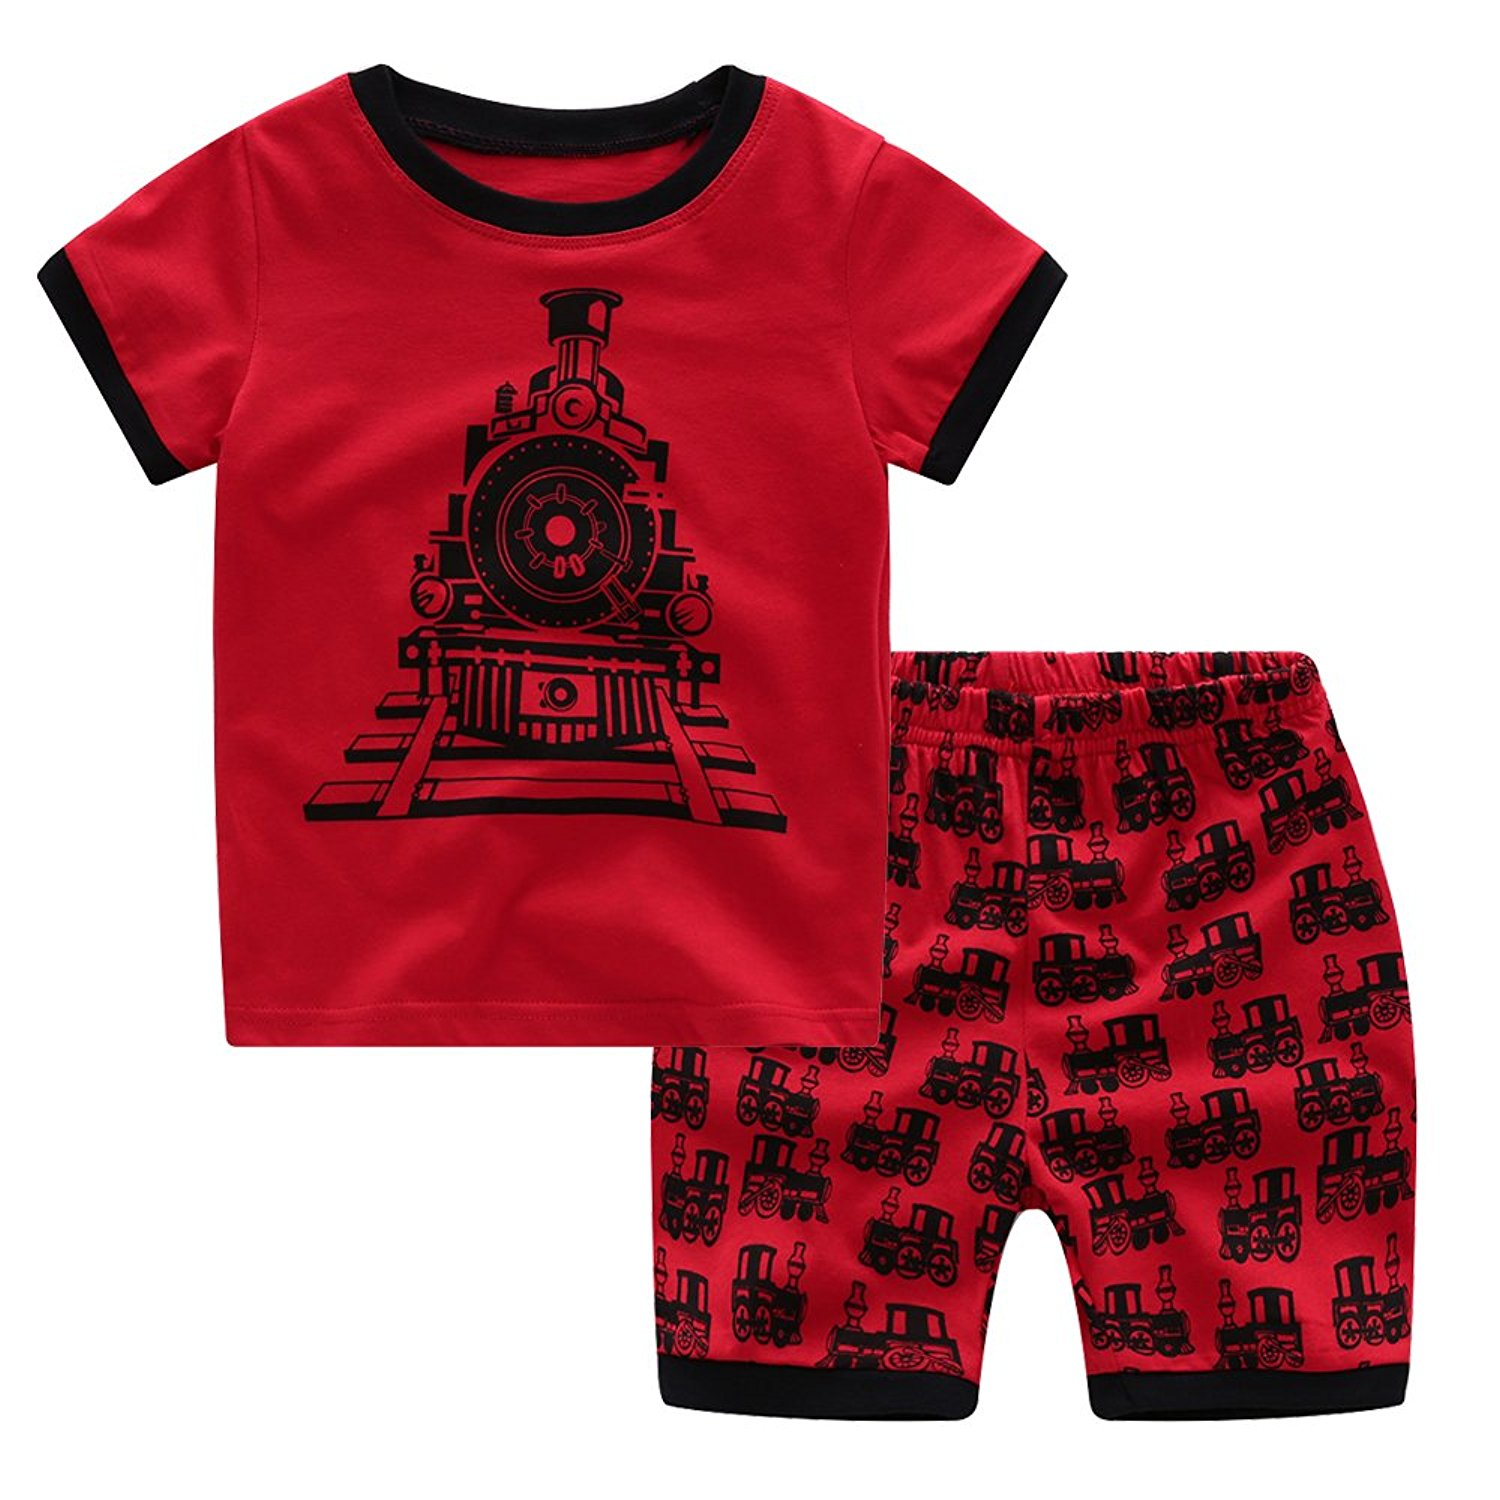 af08edf702 Get Quotations · DAYU WORLD Children s Pajamas Boys Girls Cute Sleepwear  Sets Nightgown